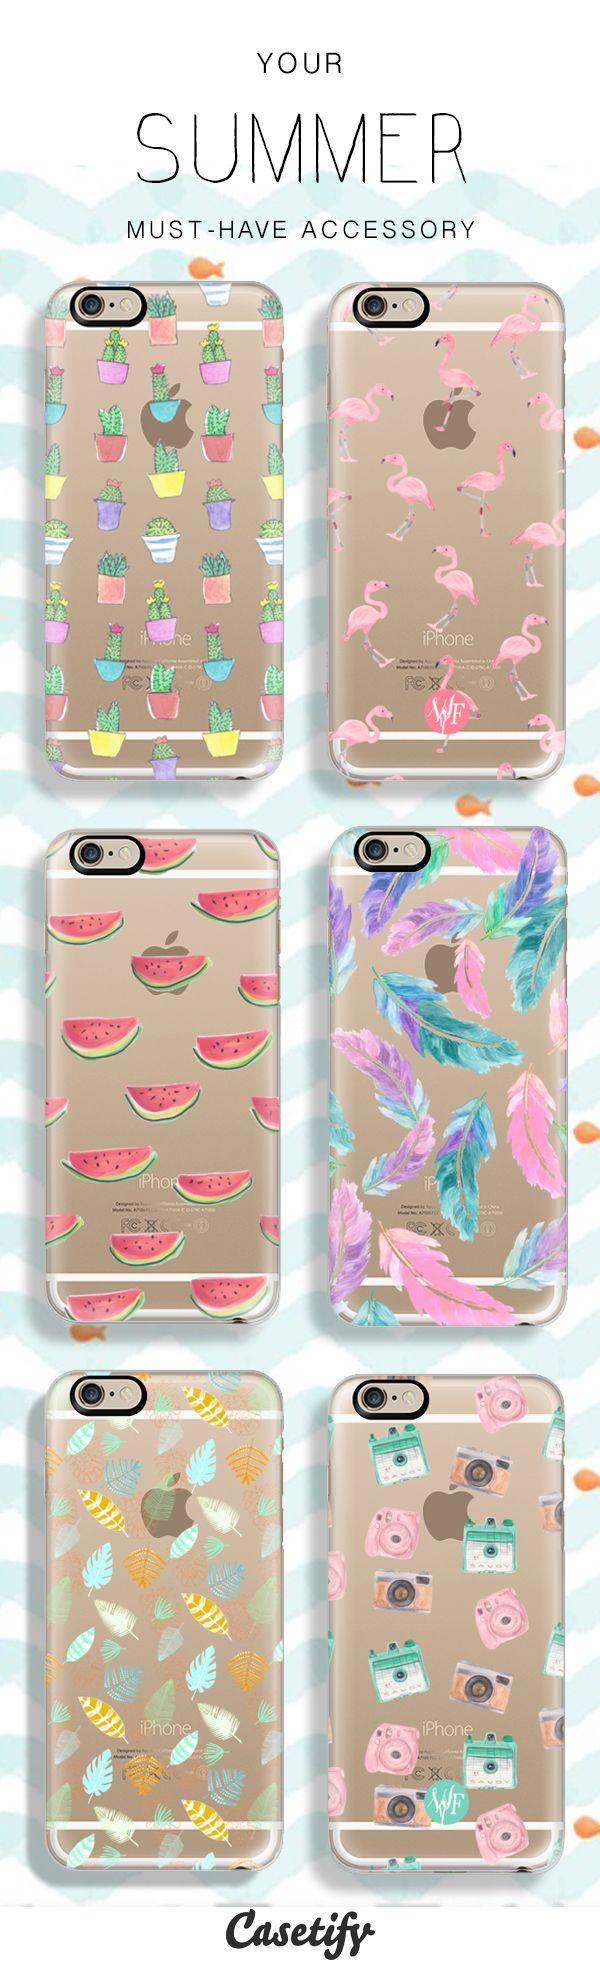 I especially love the cacti one and the feather one-Your Phone needs a Summer Makeover too! Check out some of our newest and all time favourite Summer phone cases!